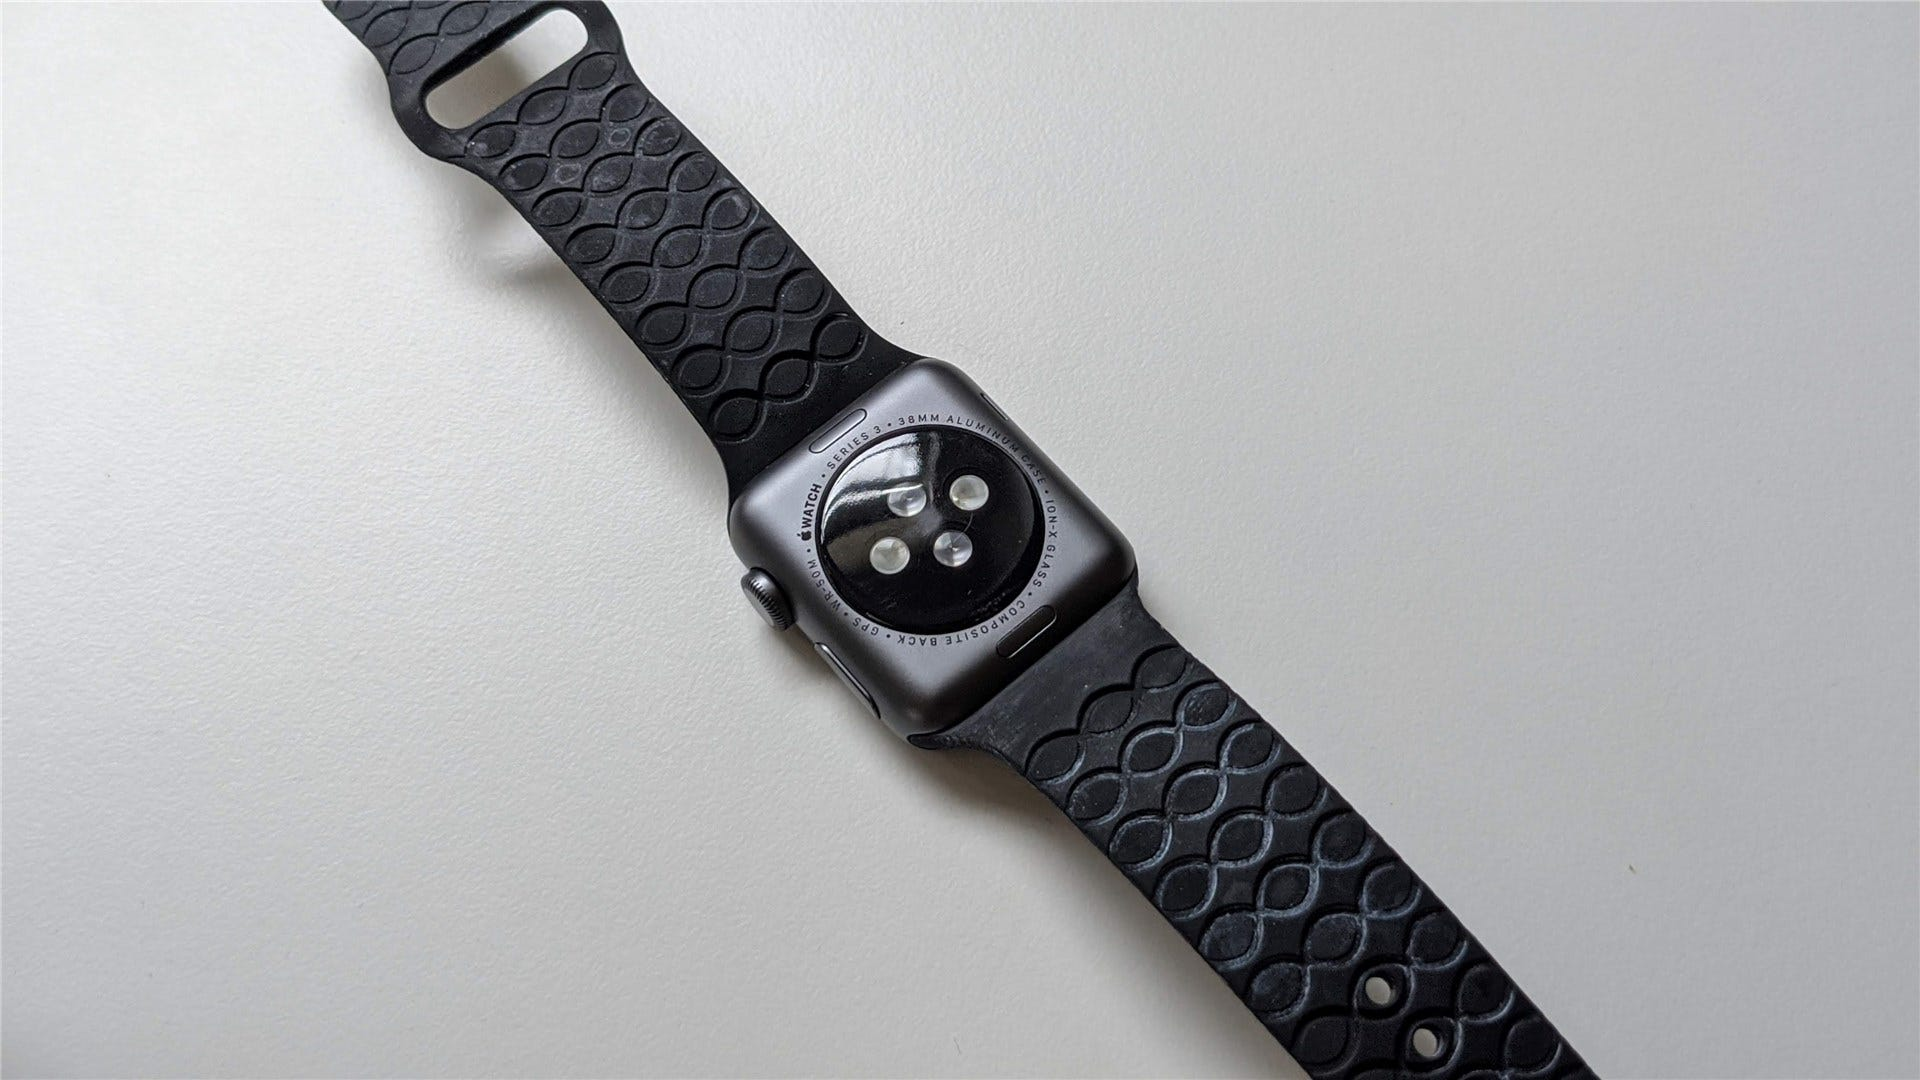 The back of the Apple Watch band, showing the grooves